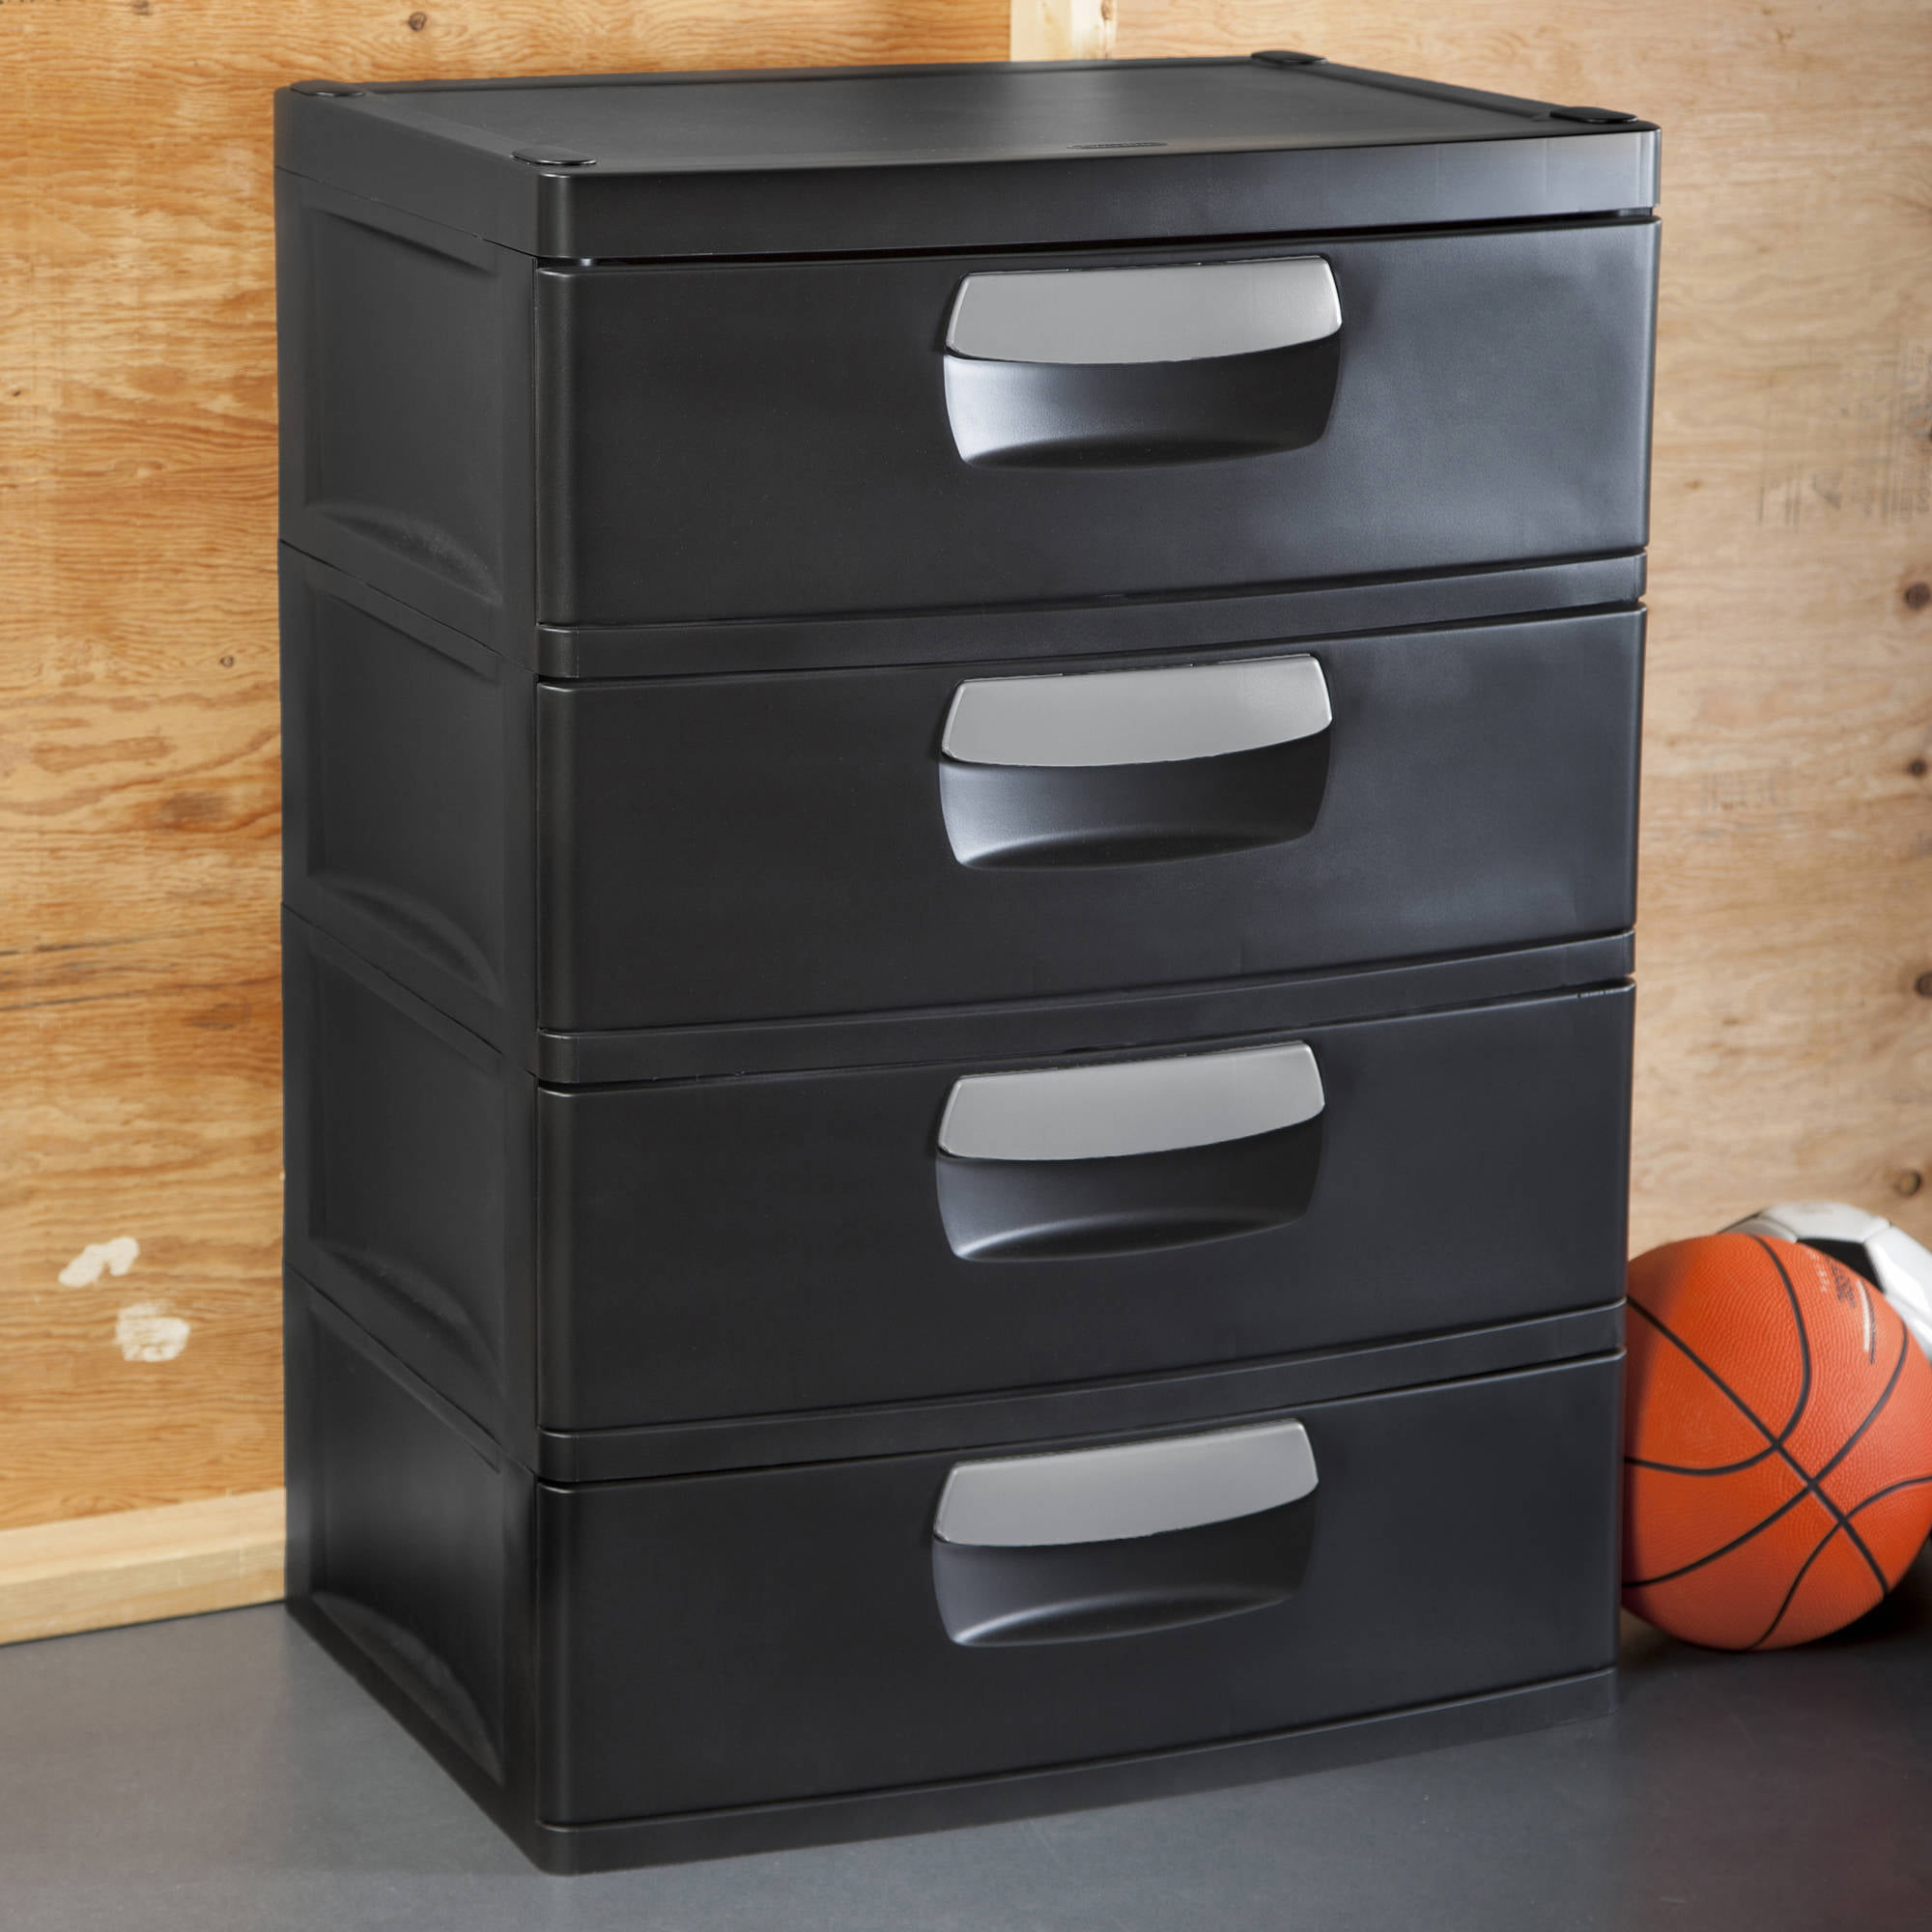 with drawers cabinet doors rack storage cabinets model visit plastic awesome graphics box partment photos of new